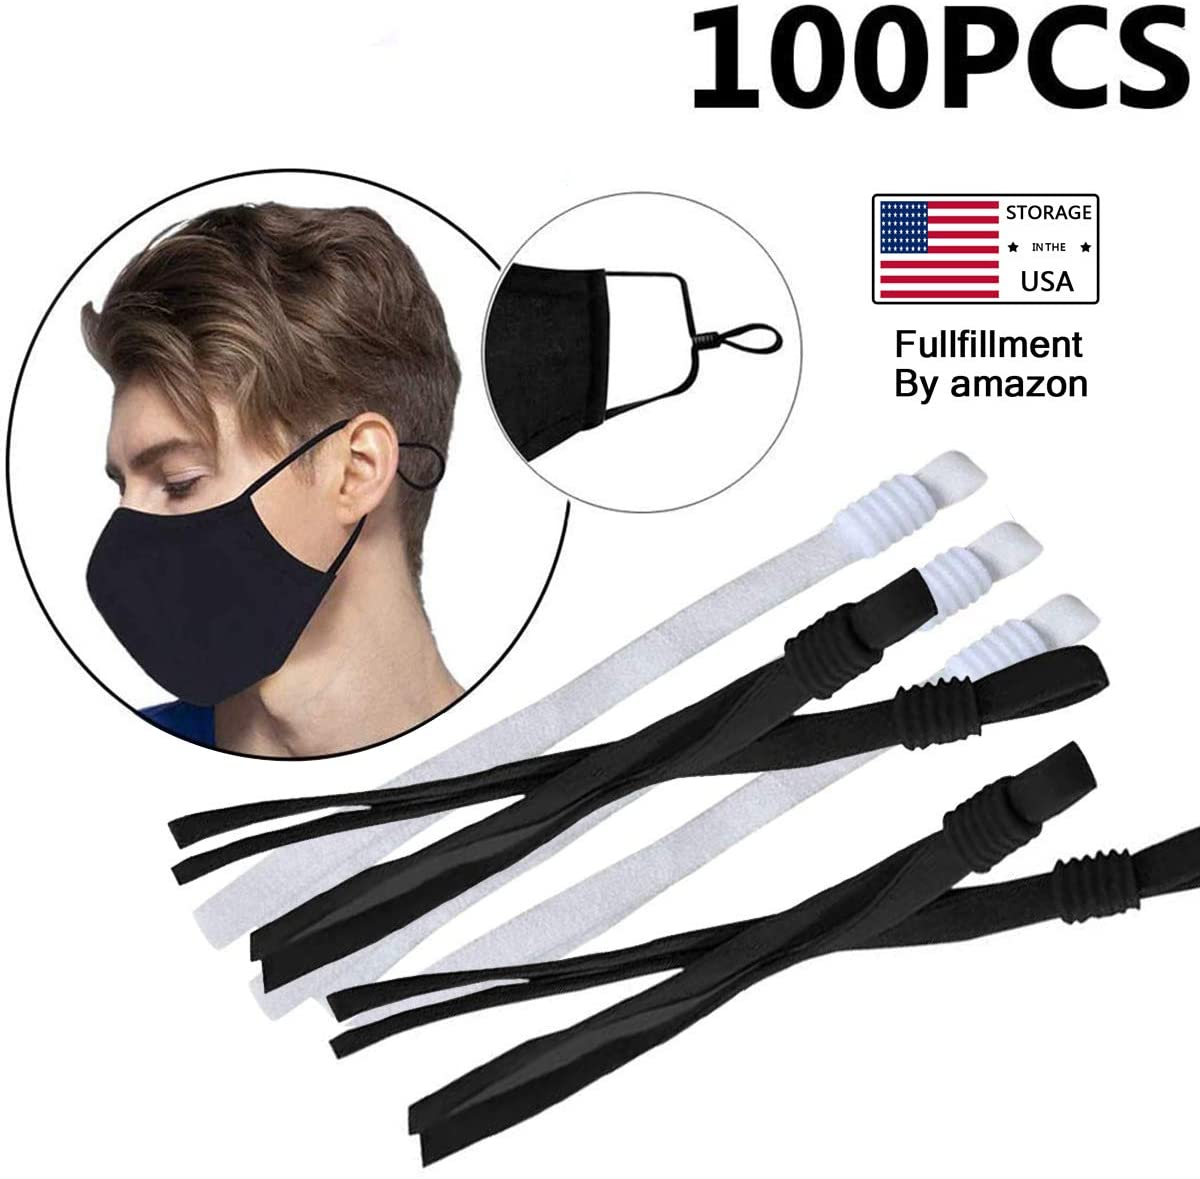 YEAQING 100 Pieces Sewing Elastic Band Cord with Adjustable Buckle Stretch Earloop Lanyard Earmuff Rope for DIY Sewing Making Supplies-Black